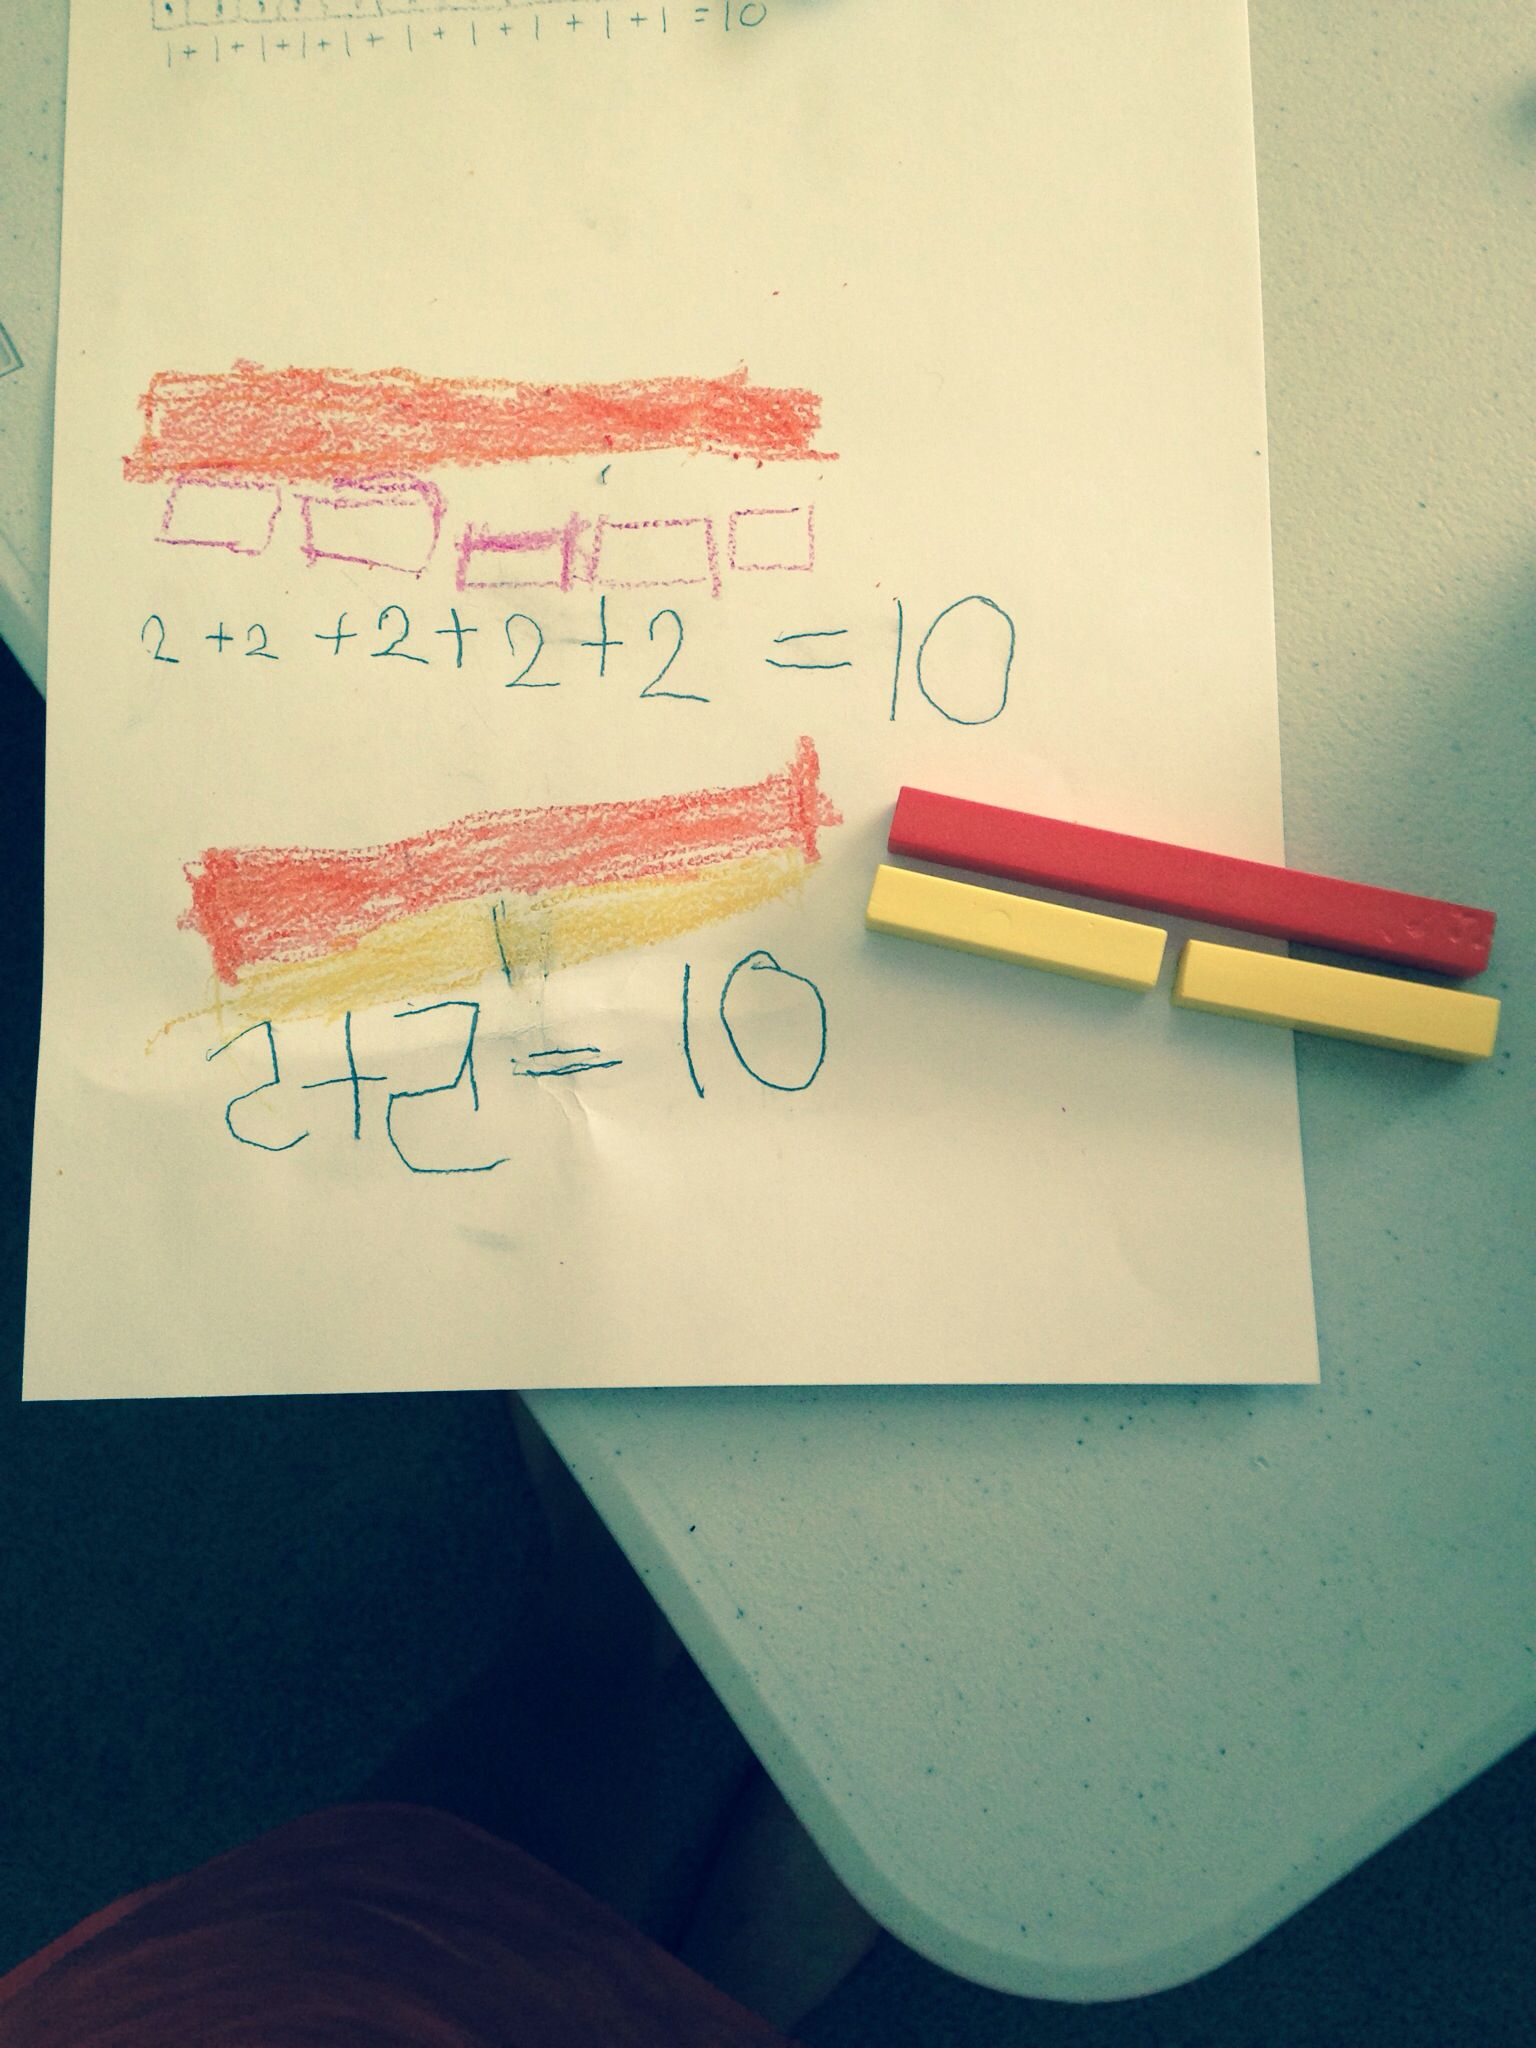 Building Addition Sentences With Cuisenaire Rods